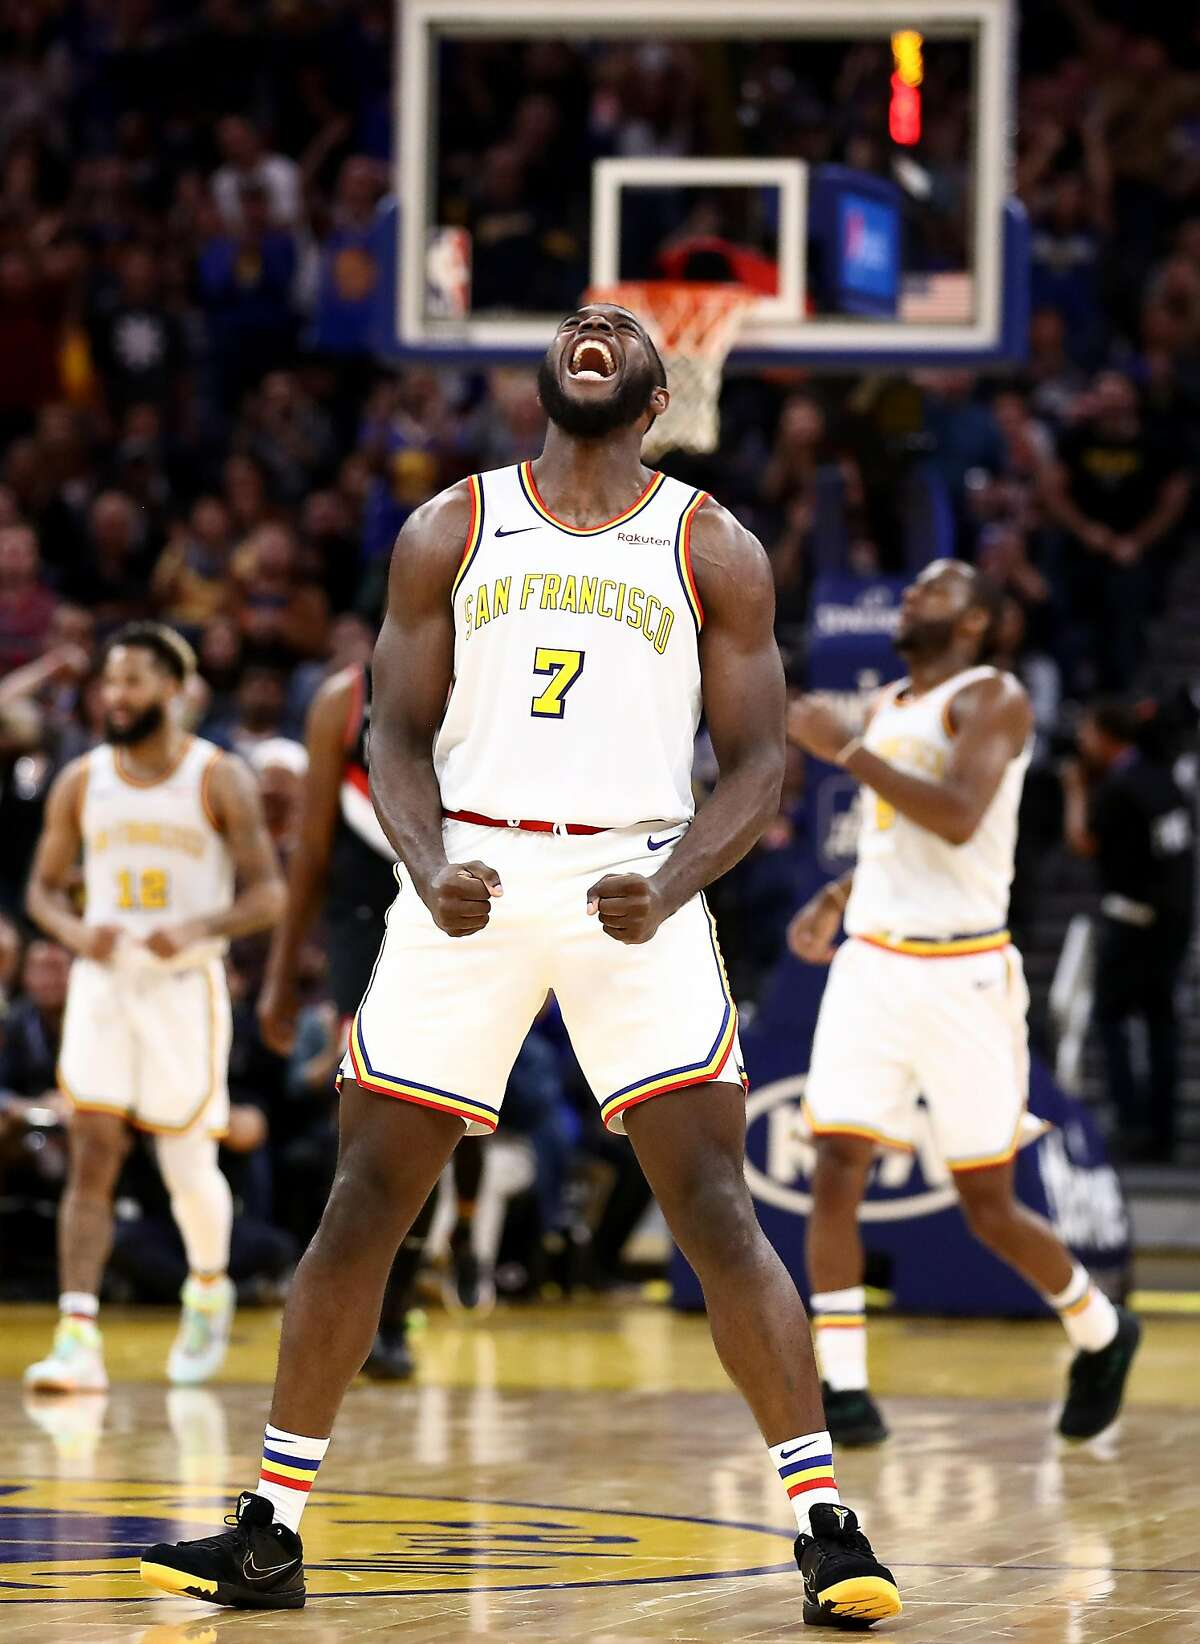 SAN FRANCISCO, CALIFORNIA - NOVEMBER 04: Eric Paschall #7 of the Golden State Warriors reacts during their game against the Portland Trail Blazers at Chase Center on November 04, 2019 in San Francisco, California. NOTE TO USER: User expressly acknowledges and agrees that, by downloading and or using this photograph, User is consenting to the terms and conditions of the Getty Images License Agreement. (Photo by Ezra Shaw/Getty Images)